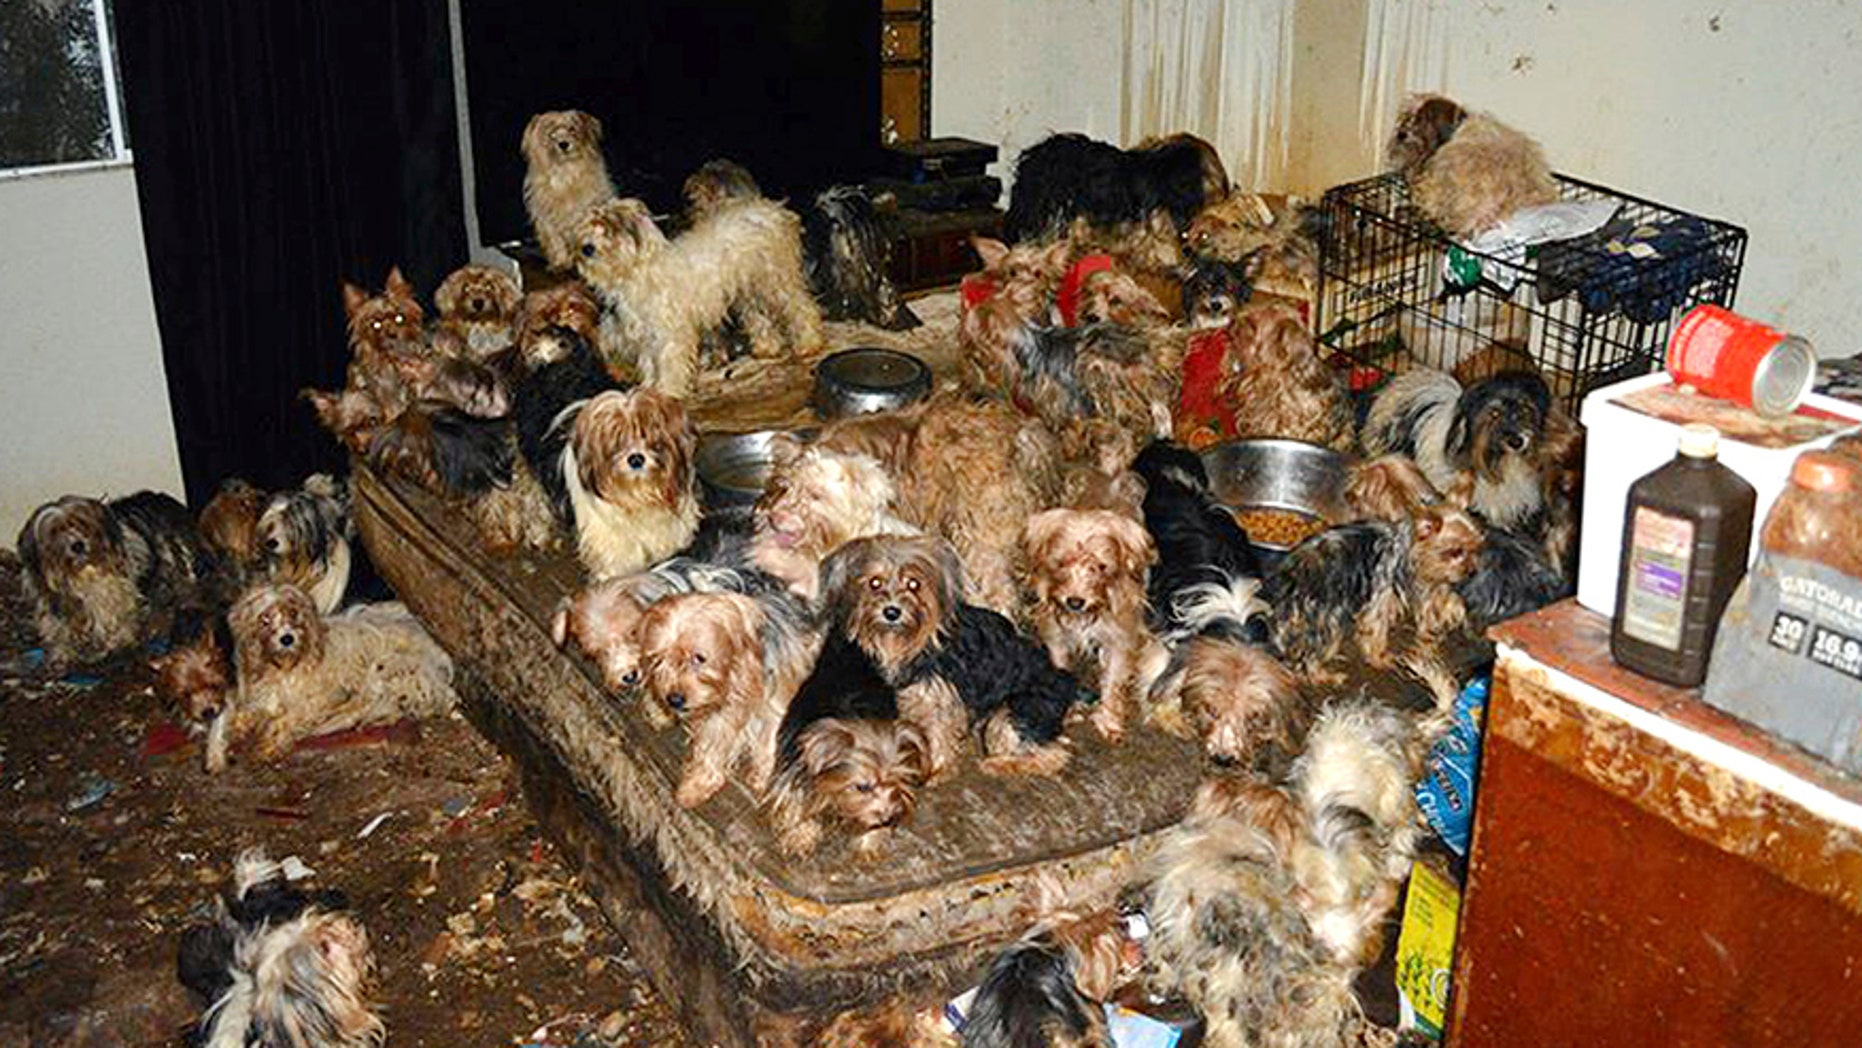 This Jan. 20, 2017, photo provided by the San Diego Humane Society shows the scene where Yorkshire terrier and Yorkie mix dogs were discovered in Poway, Calif.